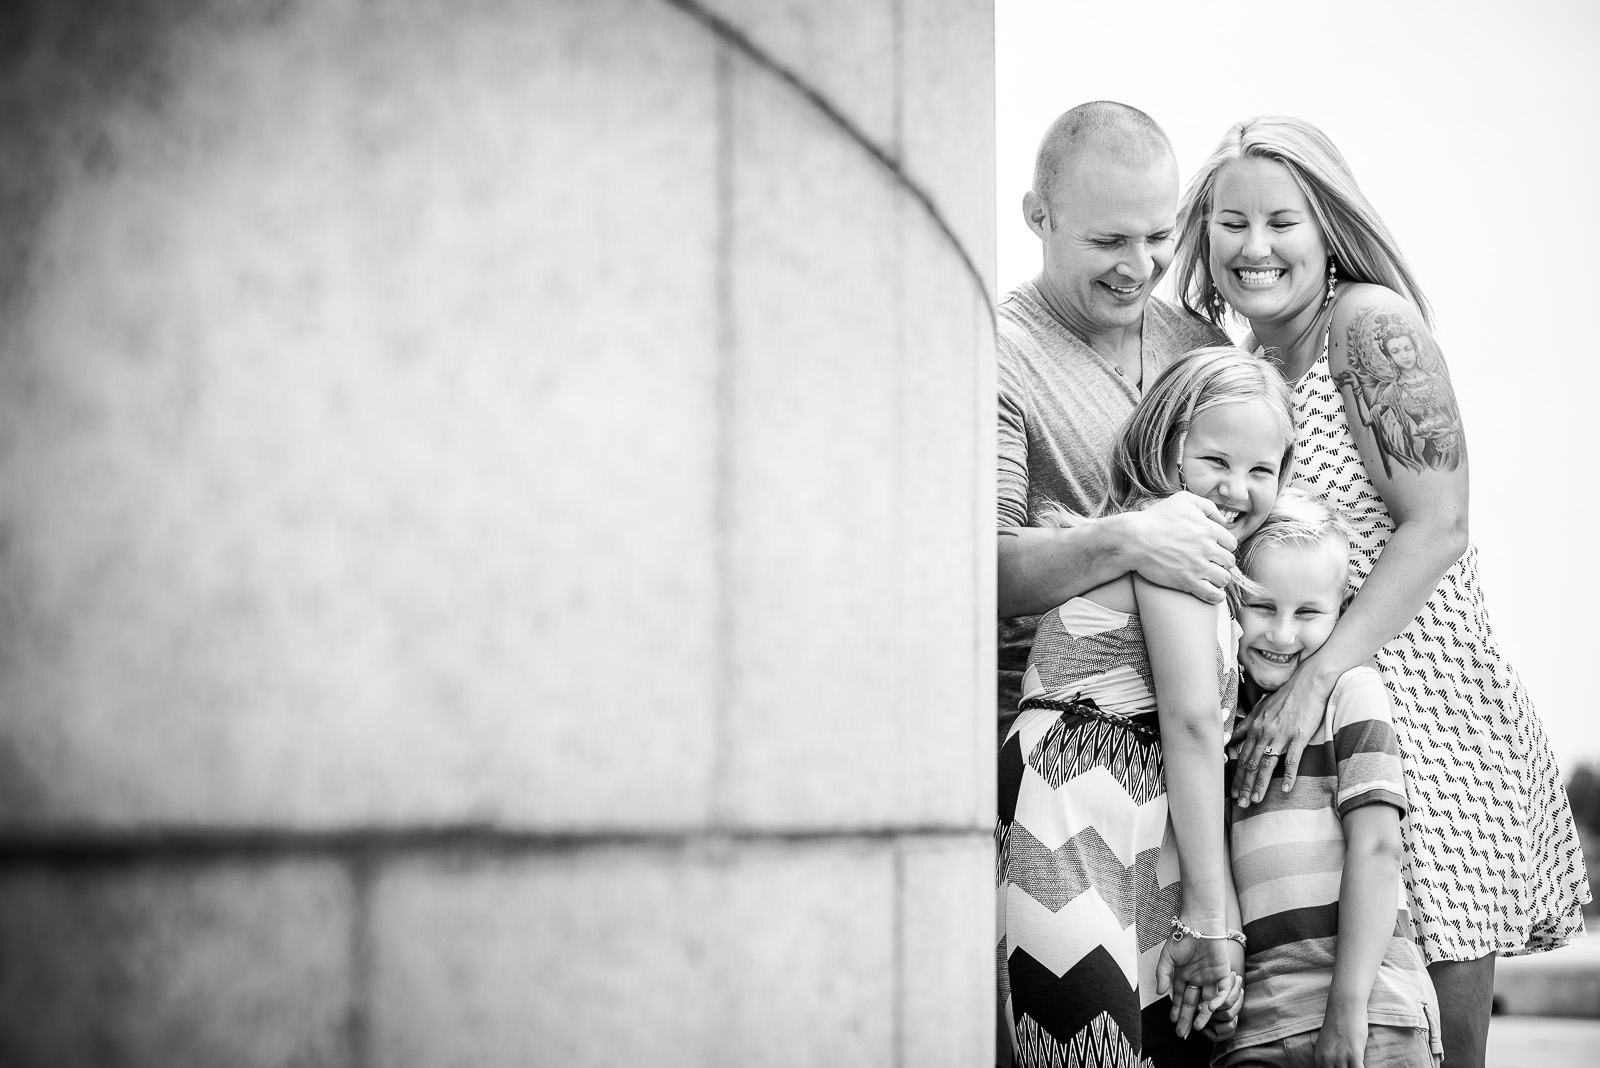 eric_and_christy_photographers_blog_family_kerriaaron-2